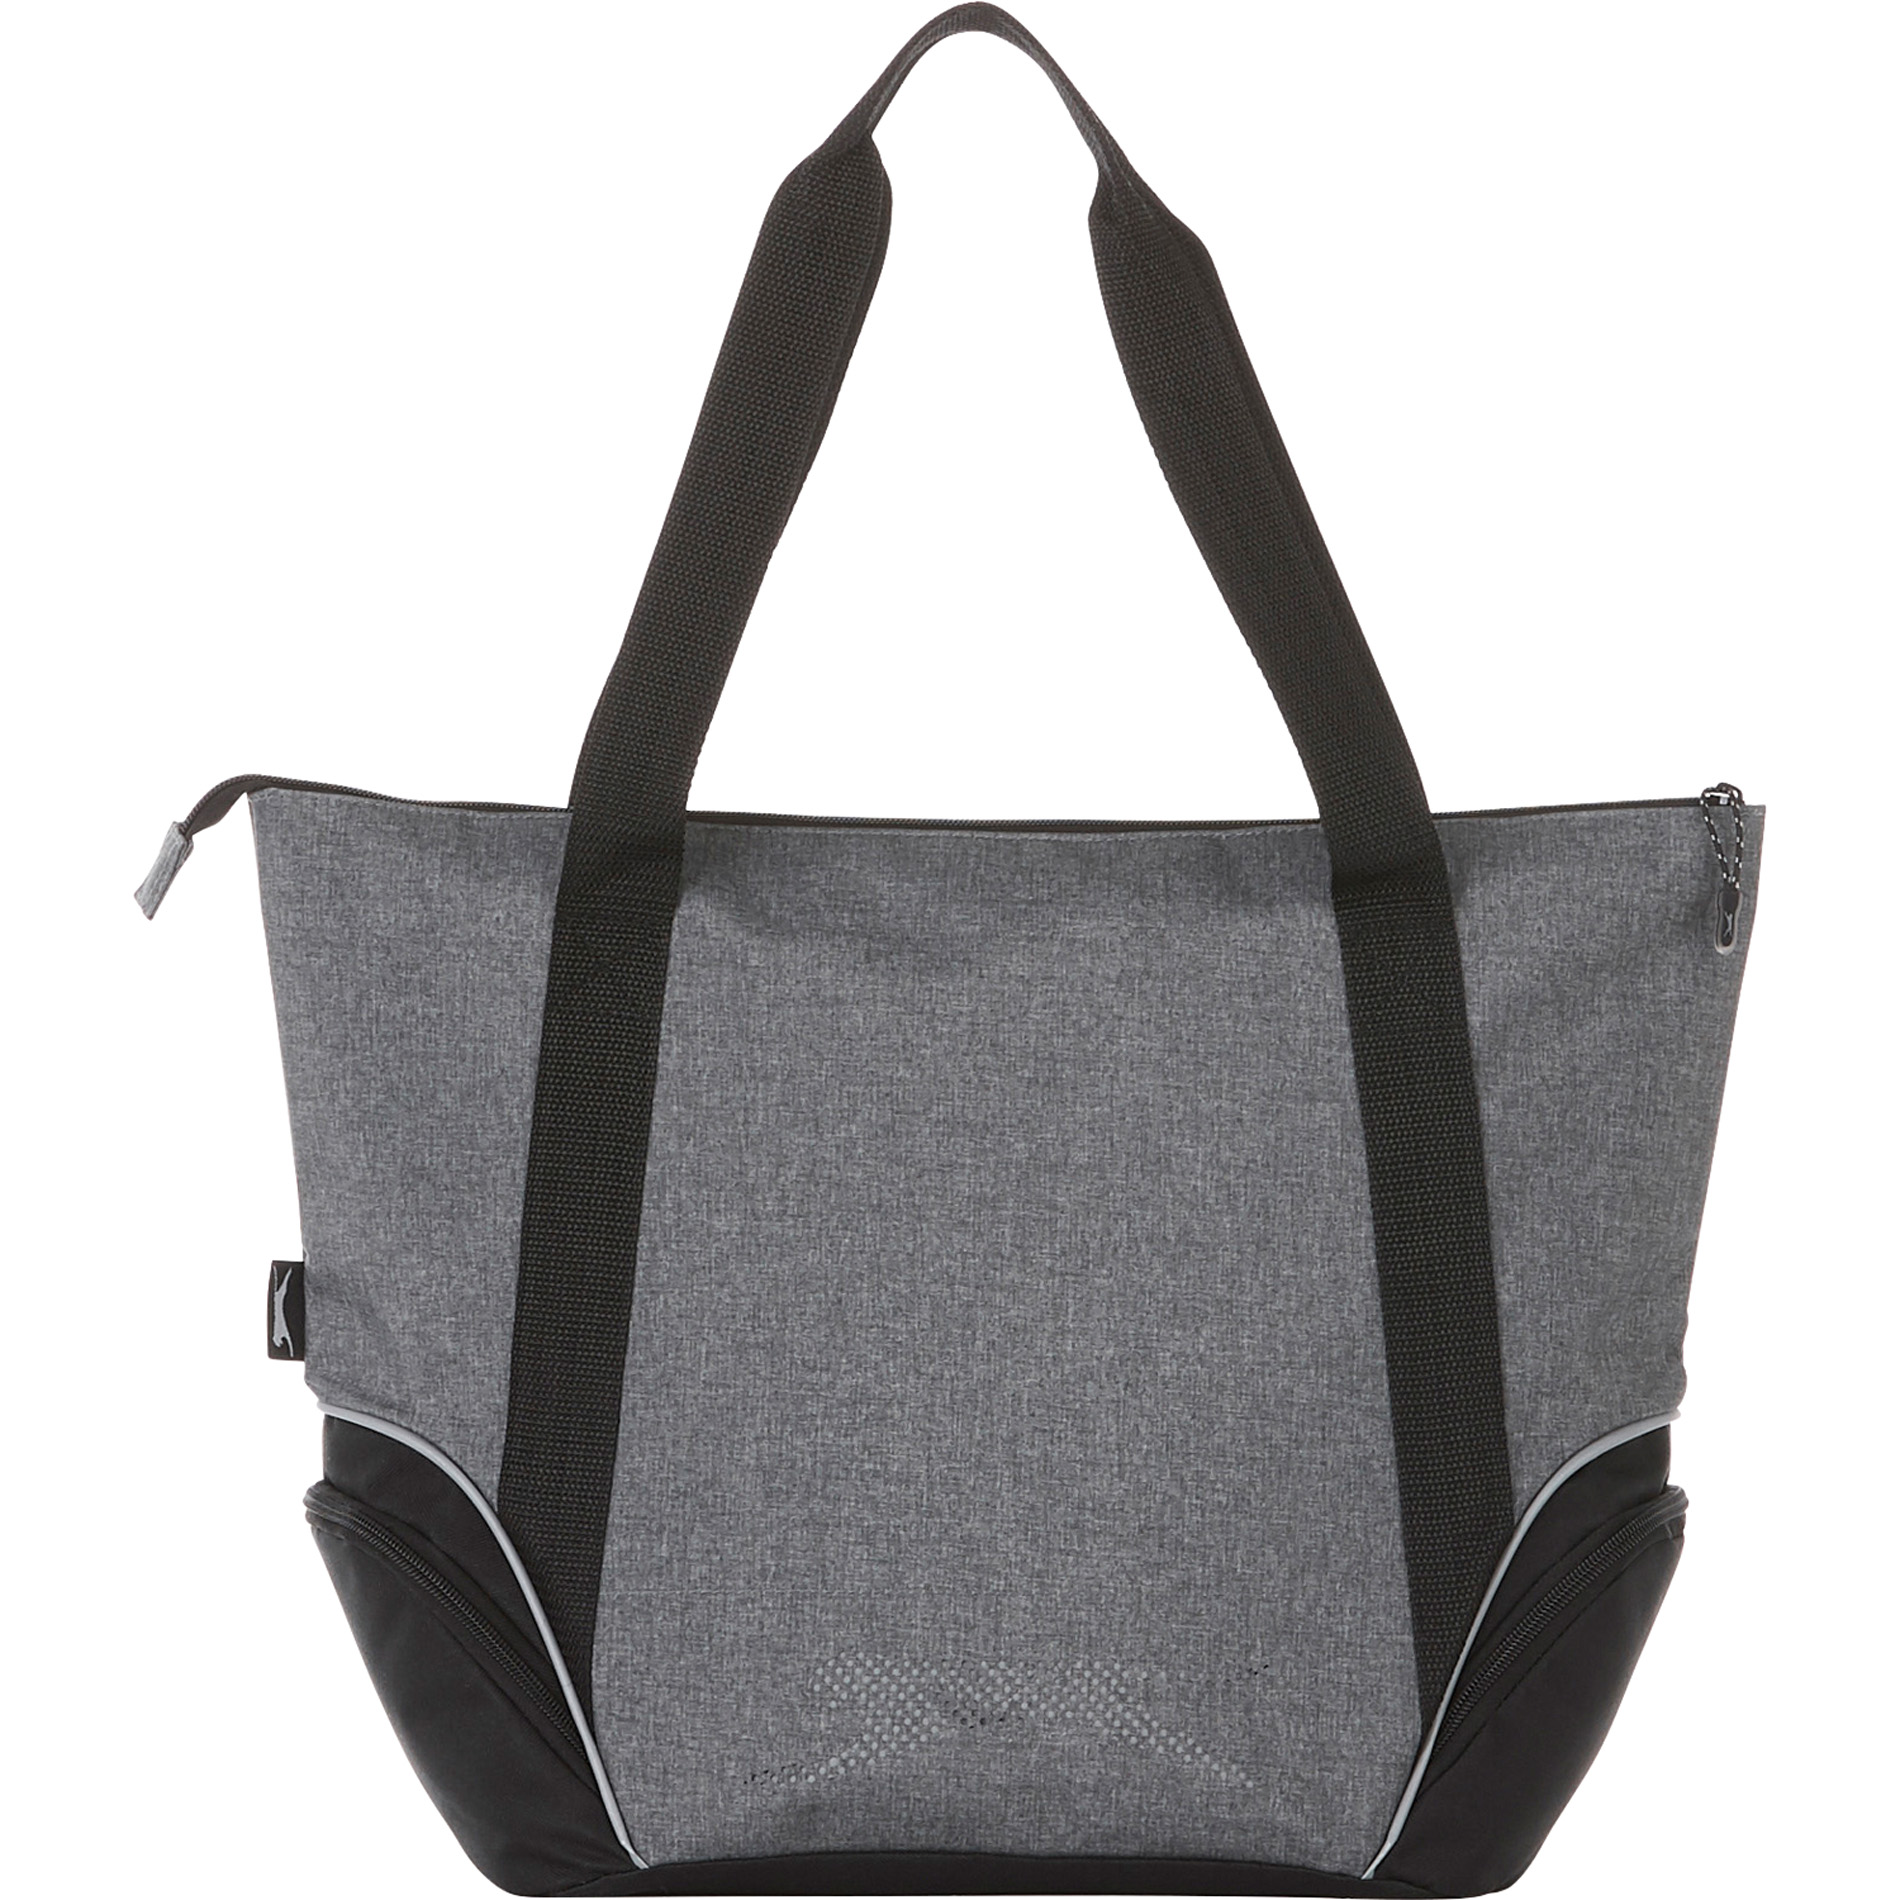 1db5aacc214 Slazenger 6050-21 - Competition Fitness Tote  9.74 - Bags